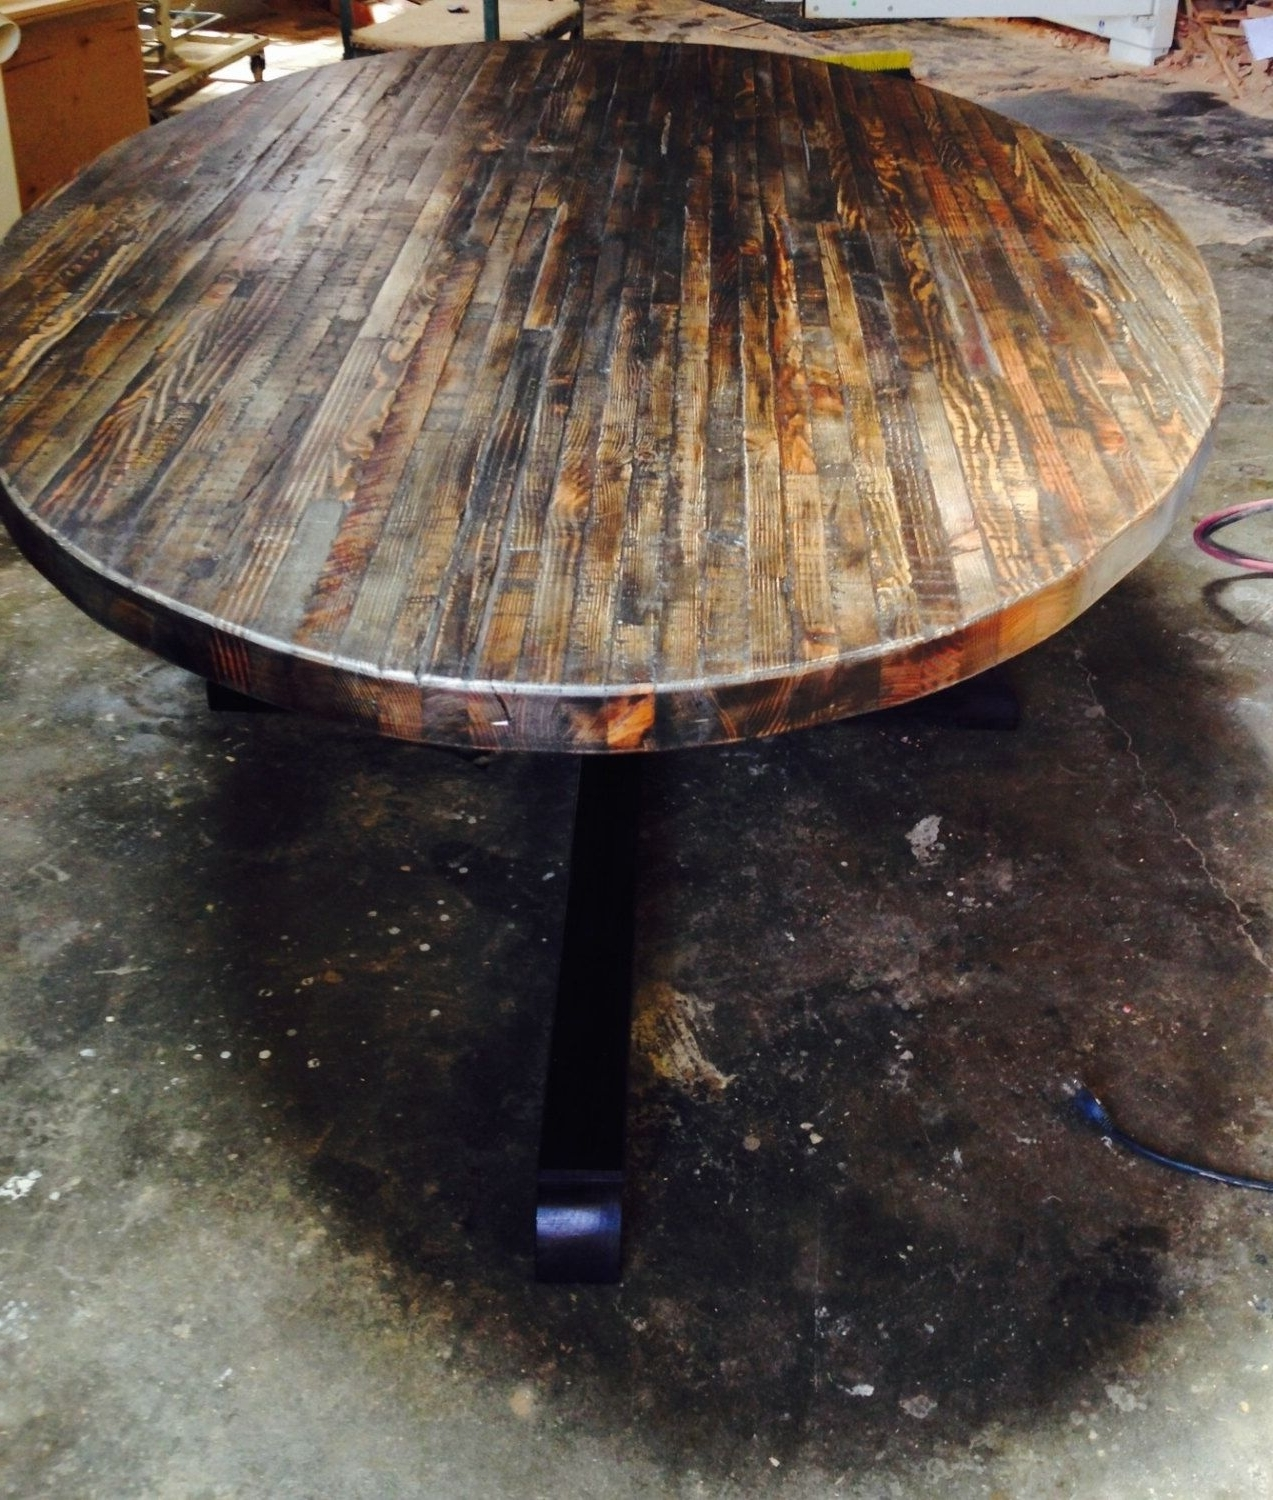 Most Recently Released Extra Large Custom Butcher Block Strip Oval Wood Dining Table From Intended For Oval Reclaimed Wood Dining Tables (View 11 of 25)